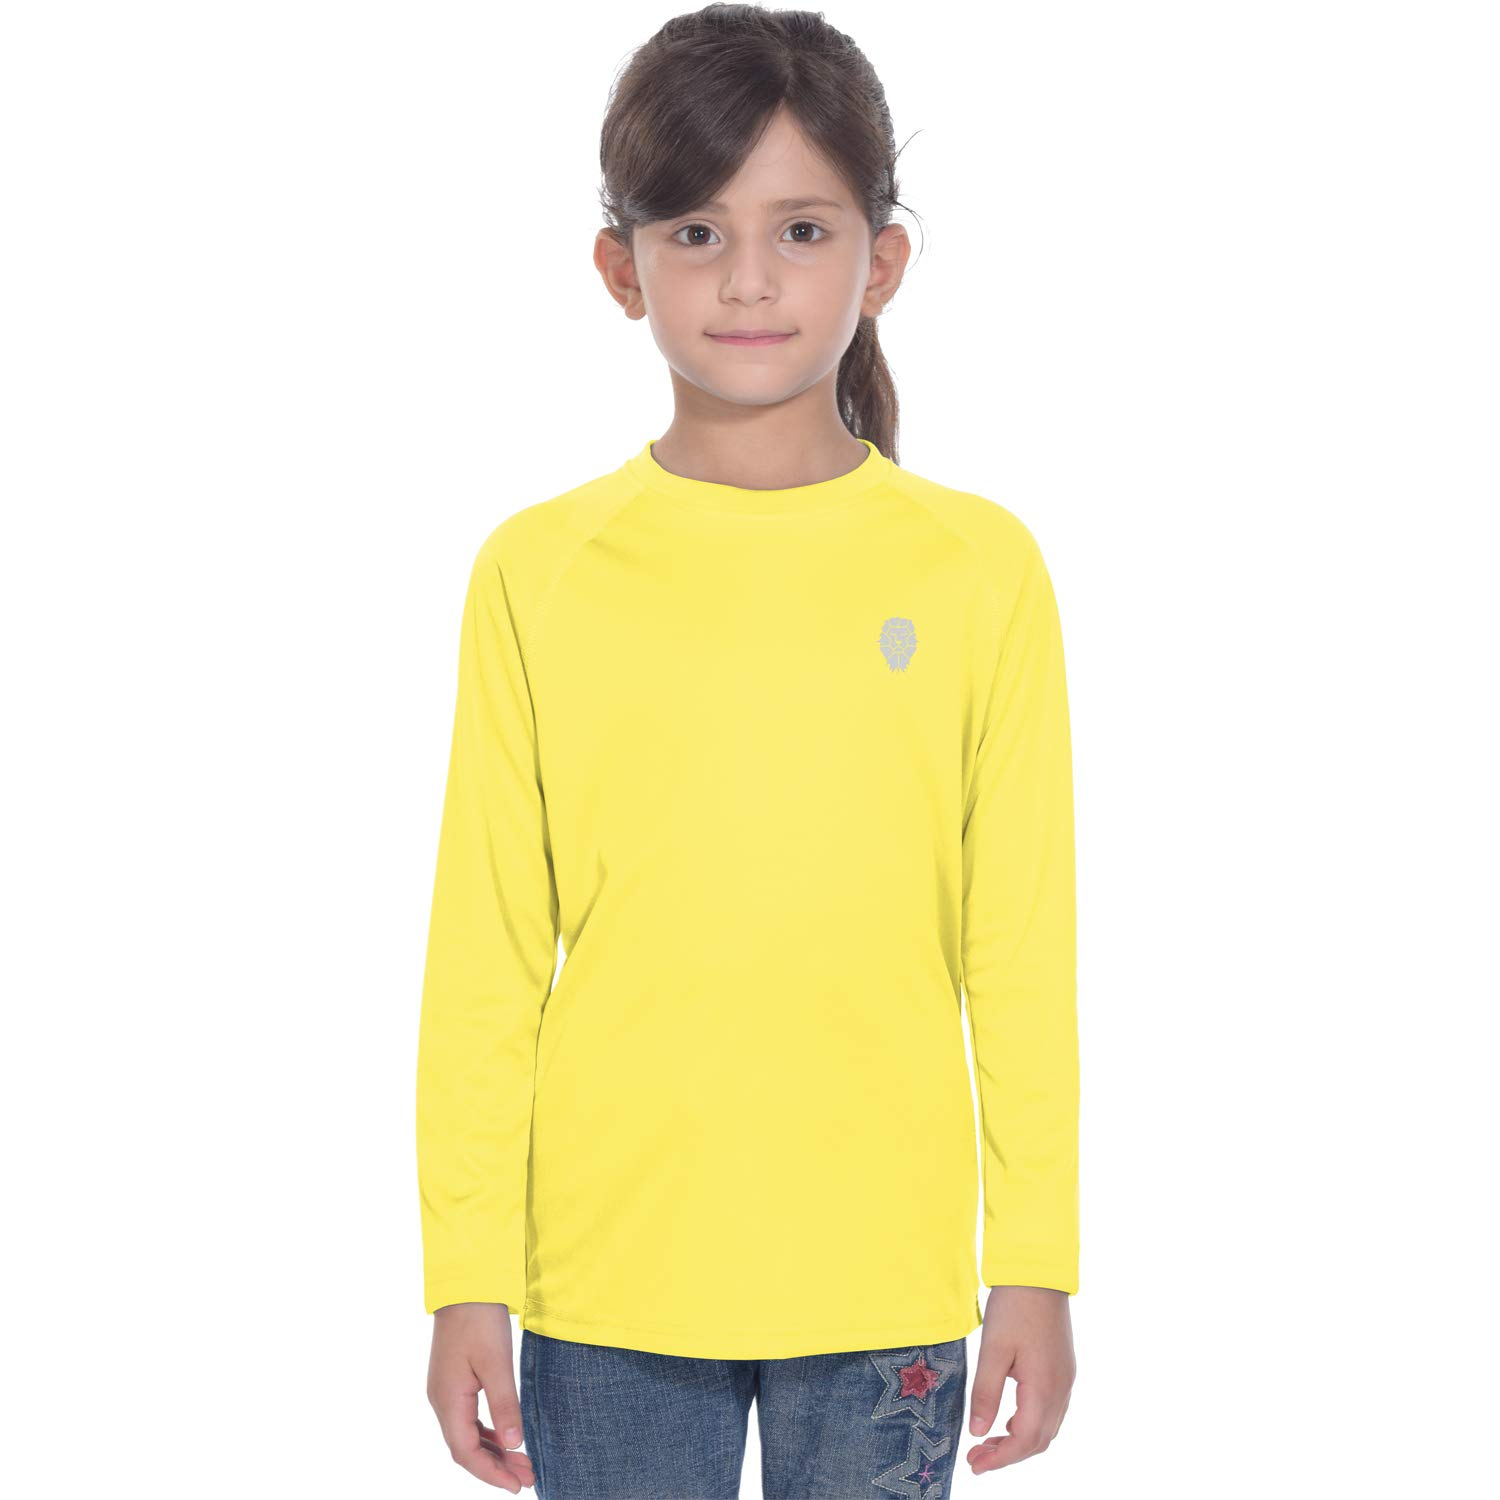 PIQIDIG Youth UV Long Sleeve Shirt Yellow by PIQIDIG